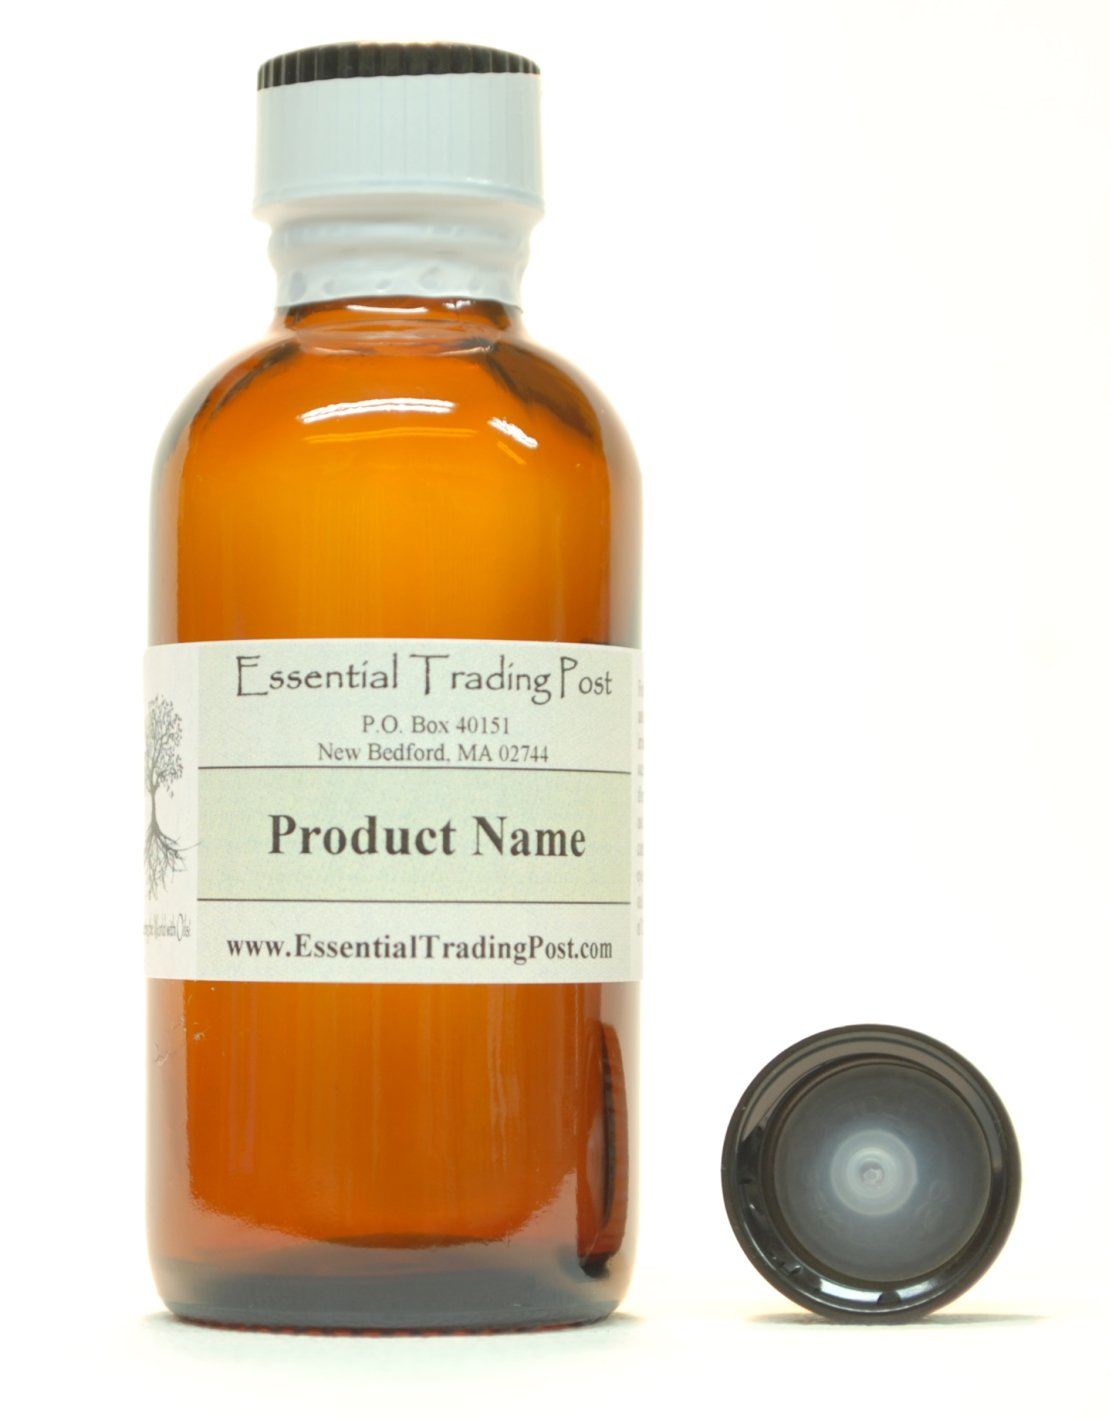 Egyption Musk Oil Essential Trading Post Oils 2 fl. oz (60 ML) by Essential Trading Post B014BYZ5LY